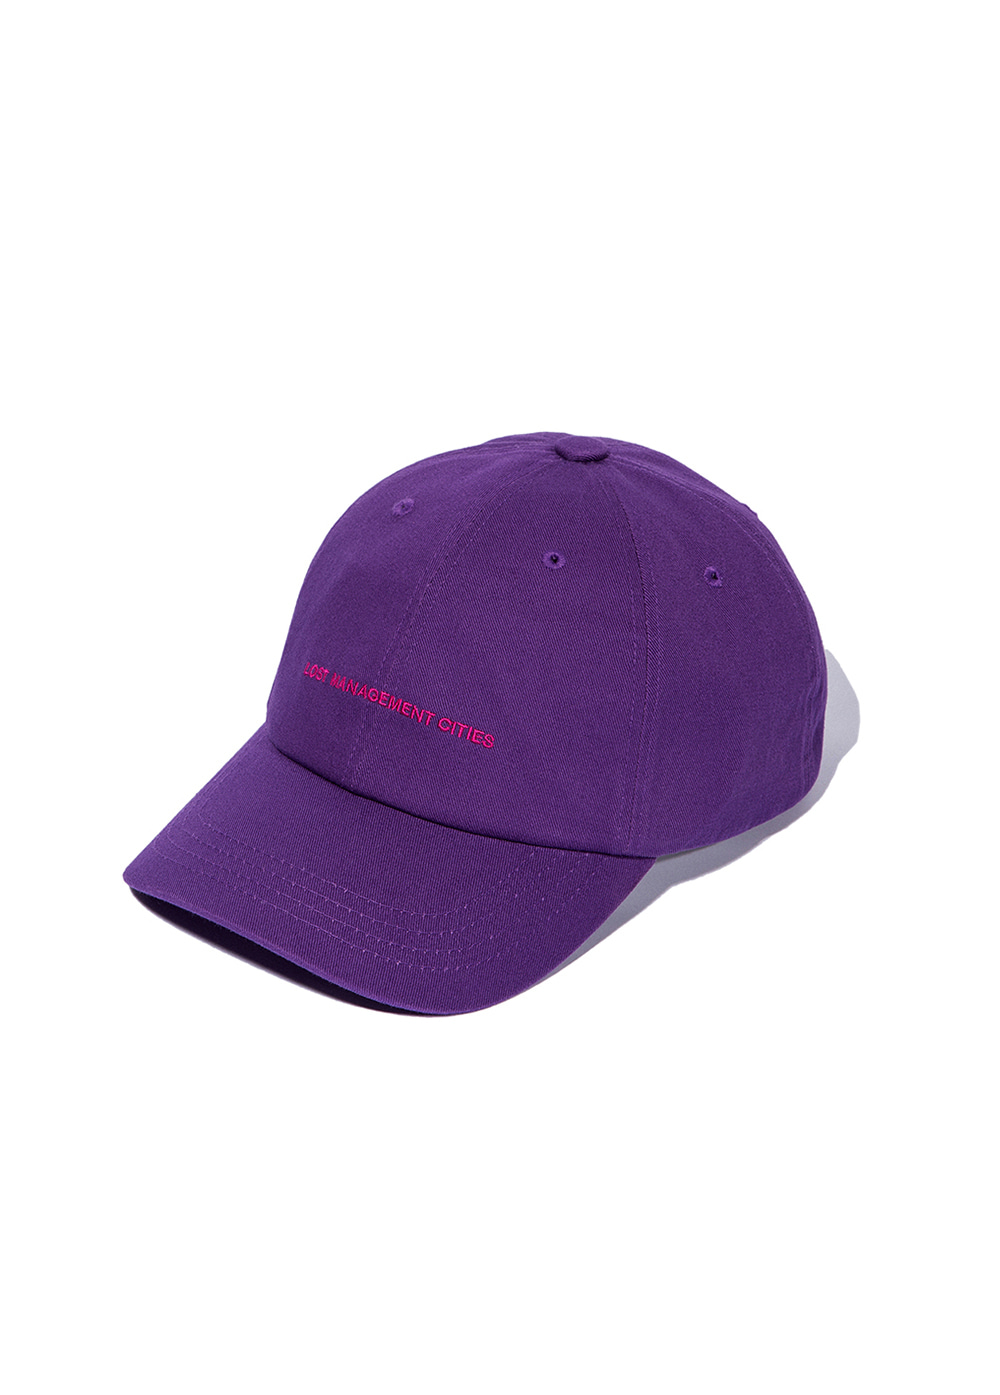 LMC CAPITAL LOGO 6 PANEL CAP purple